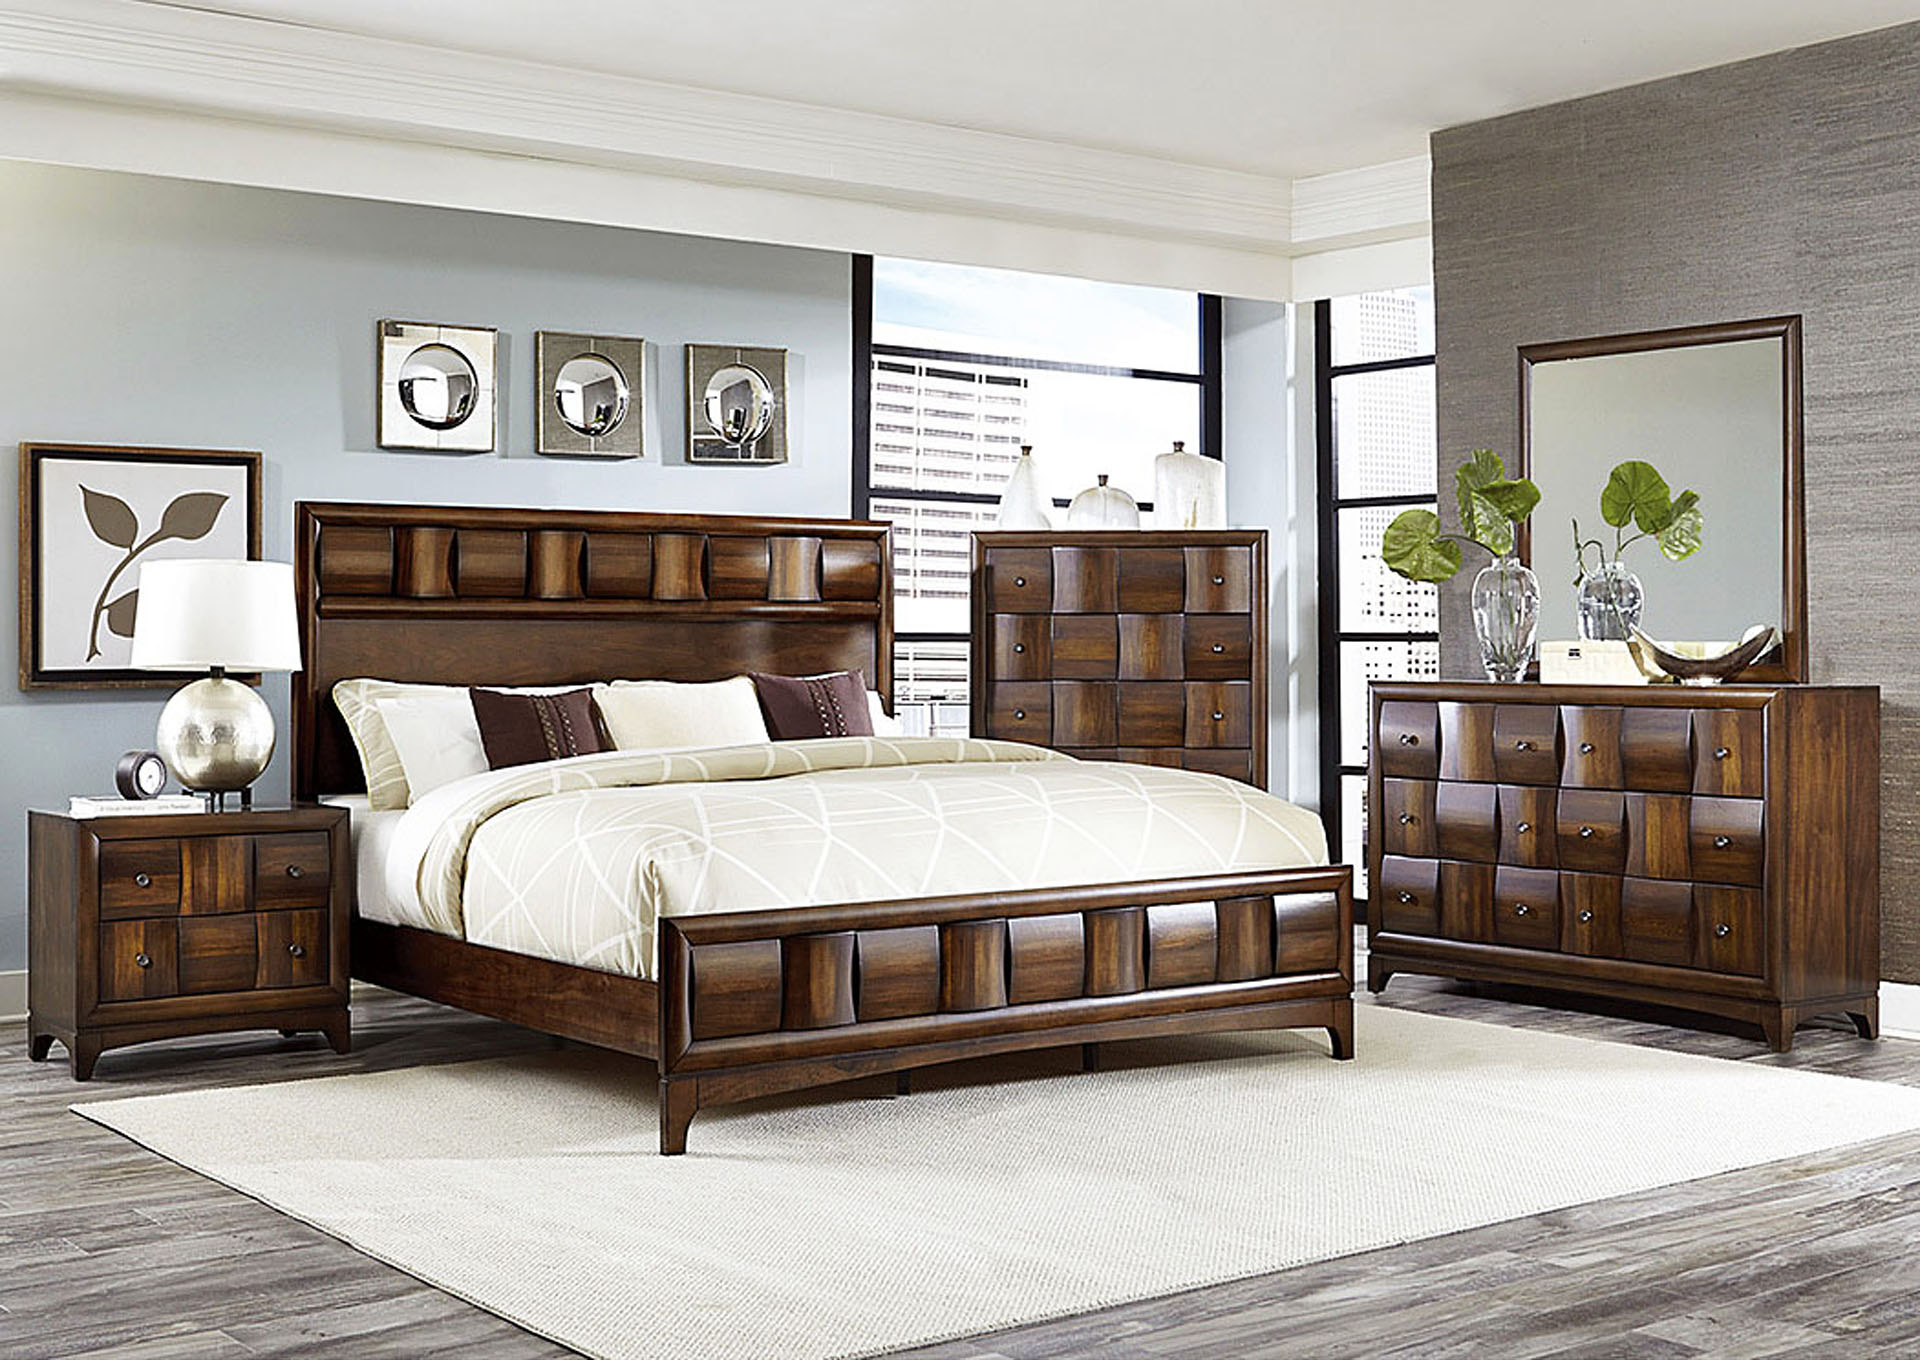 Porter Warm Walnut Queen Platform Bed,Homelegance